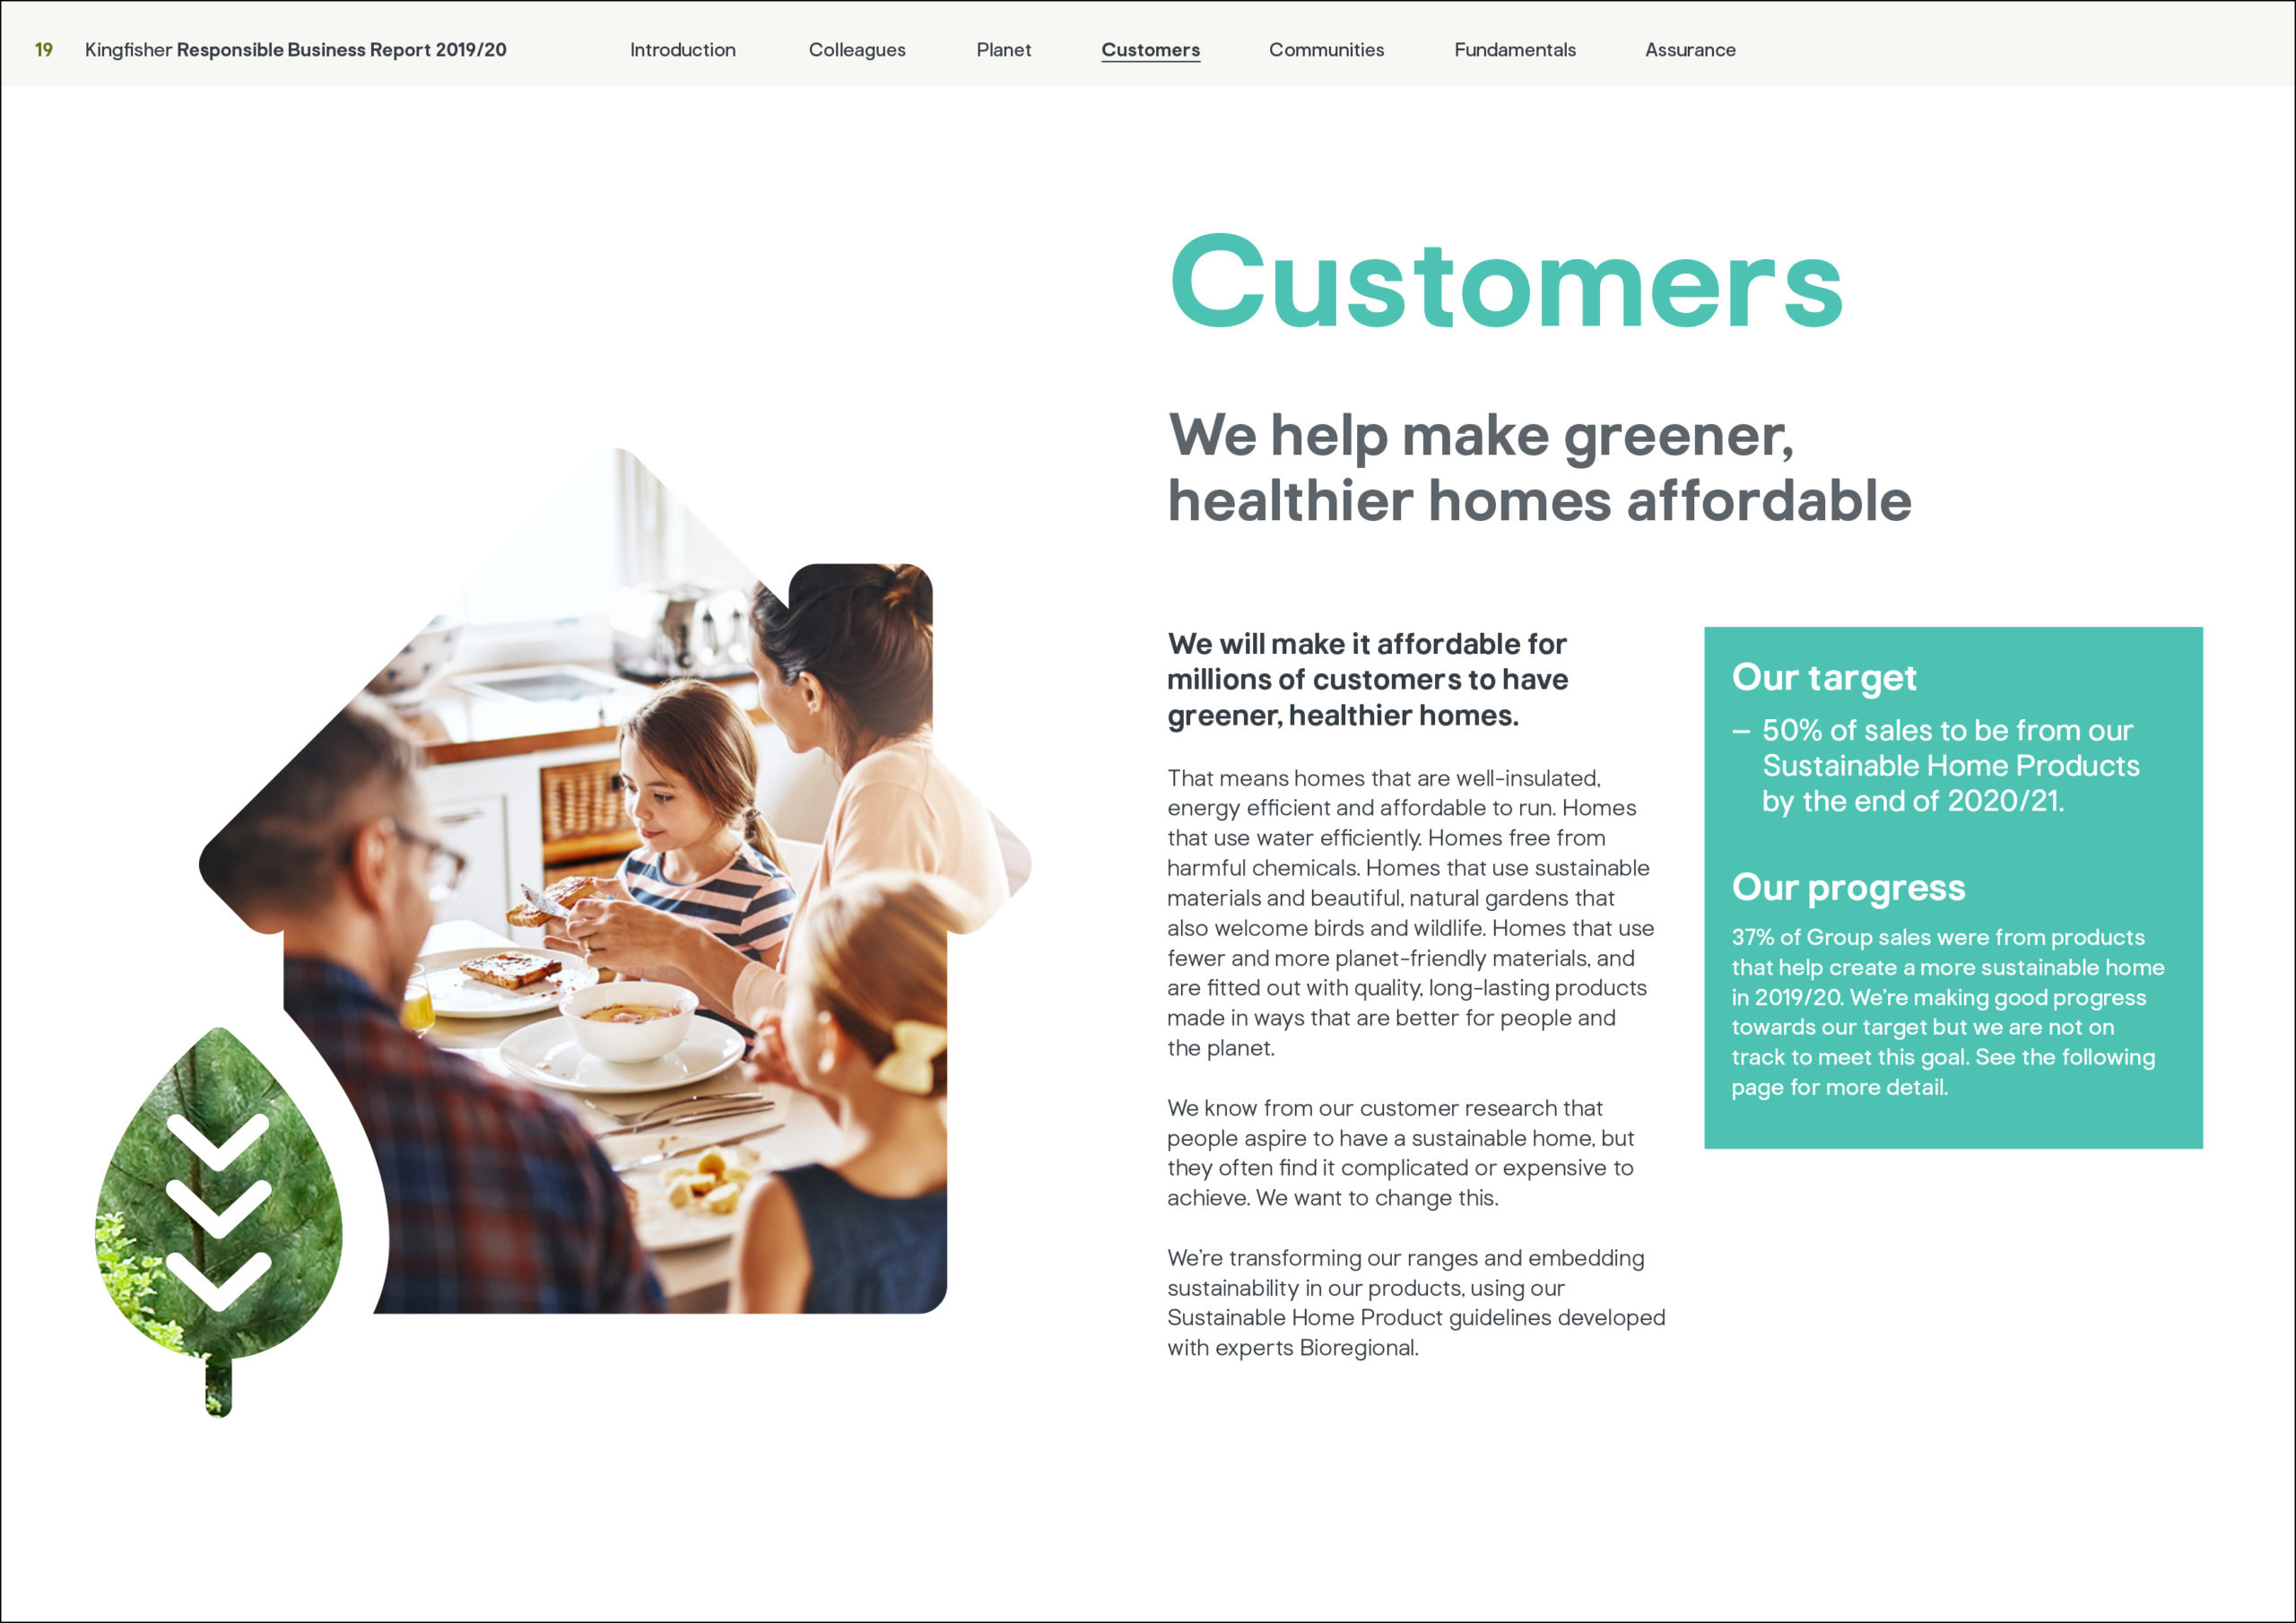 Kingfisher Responsible Business report 2019/20 page 19